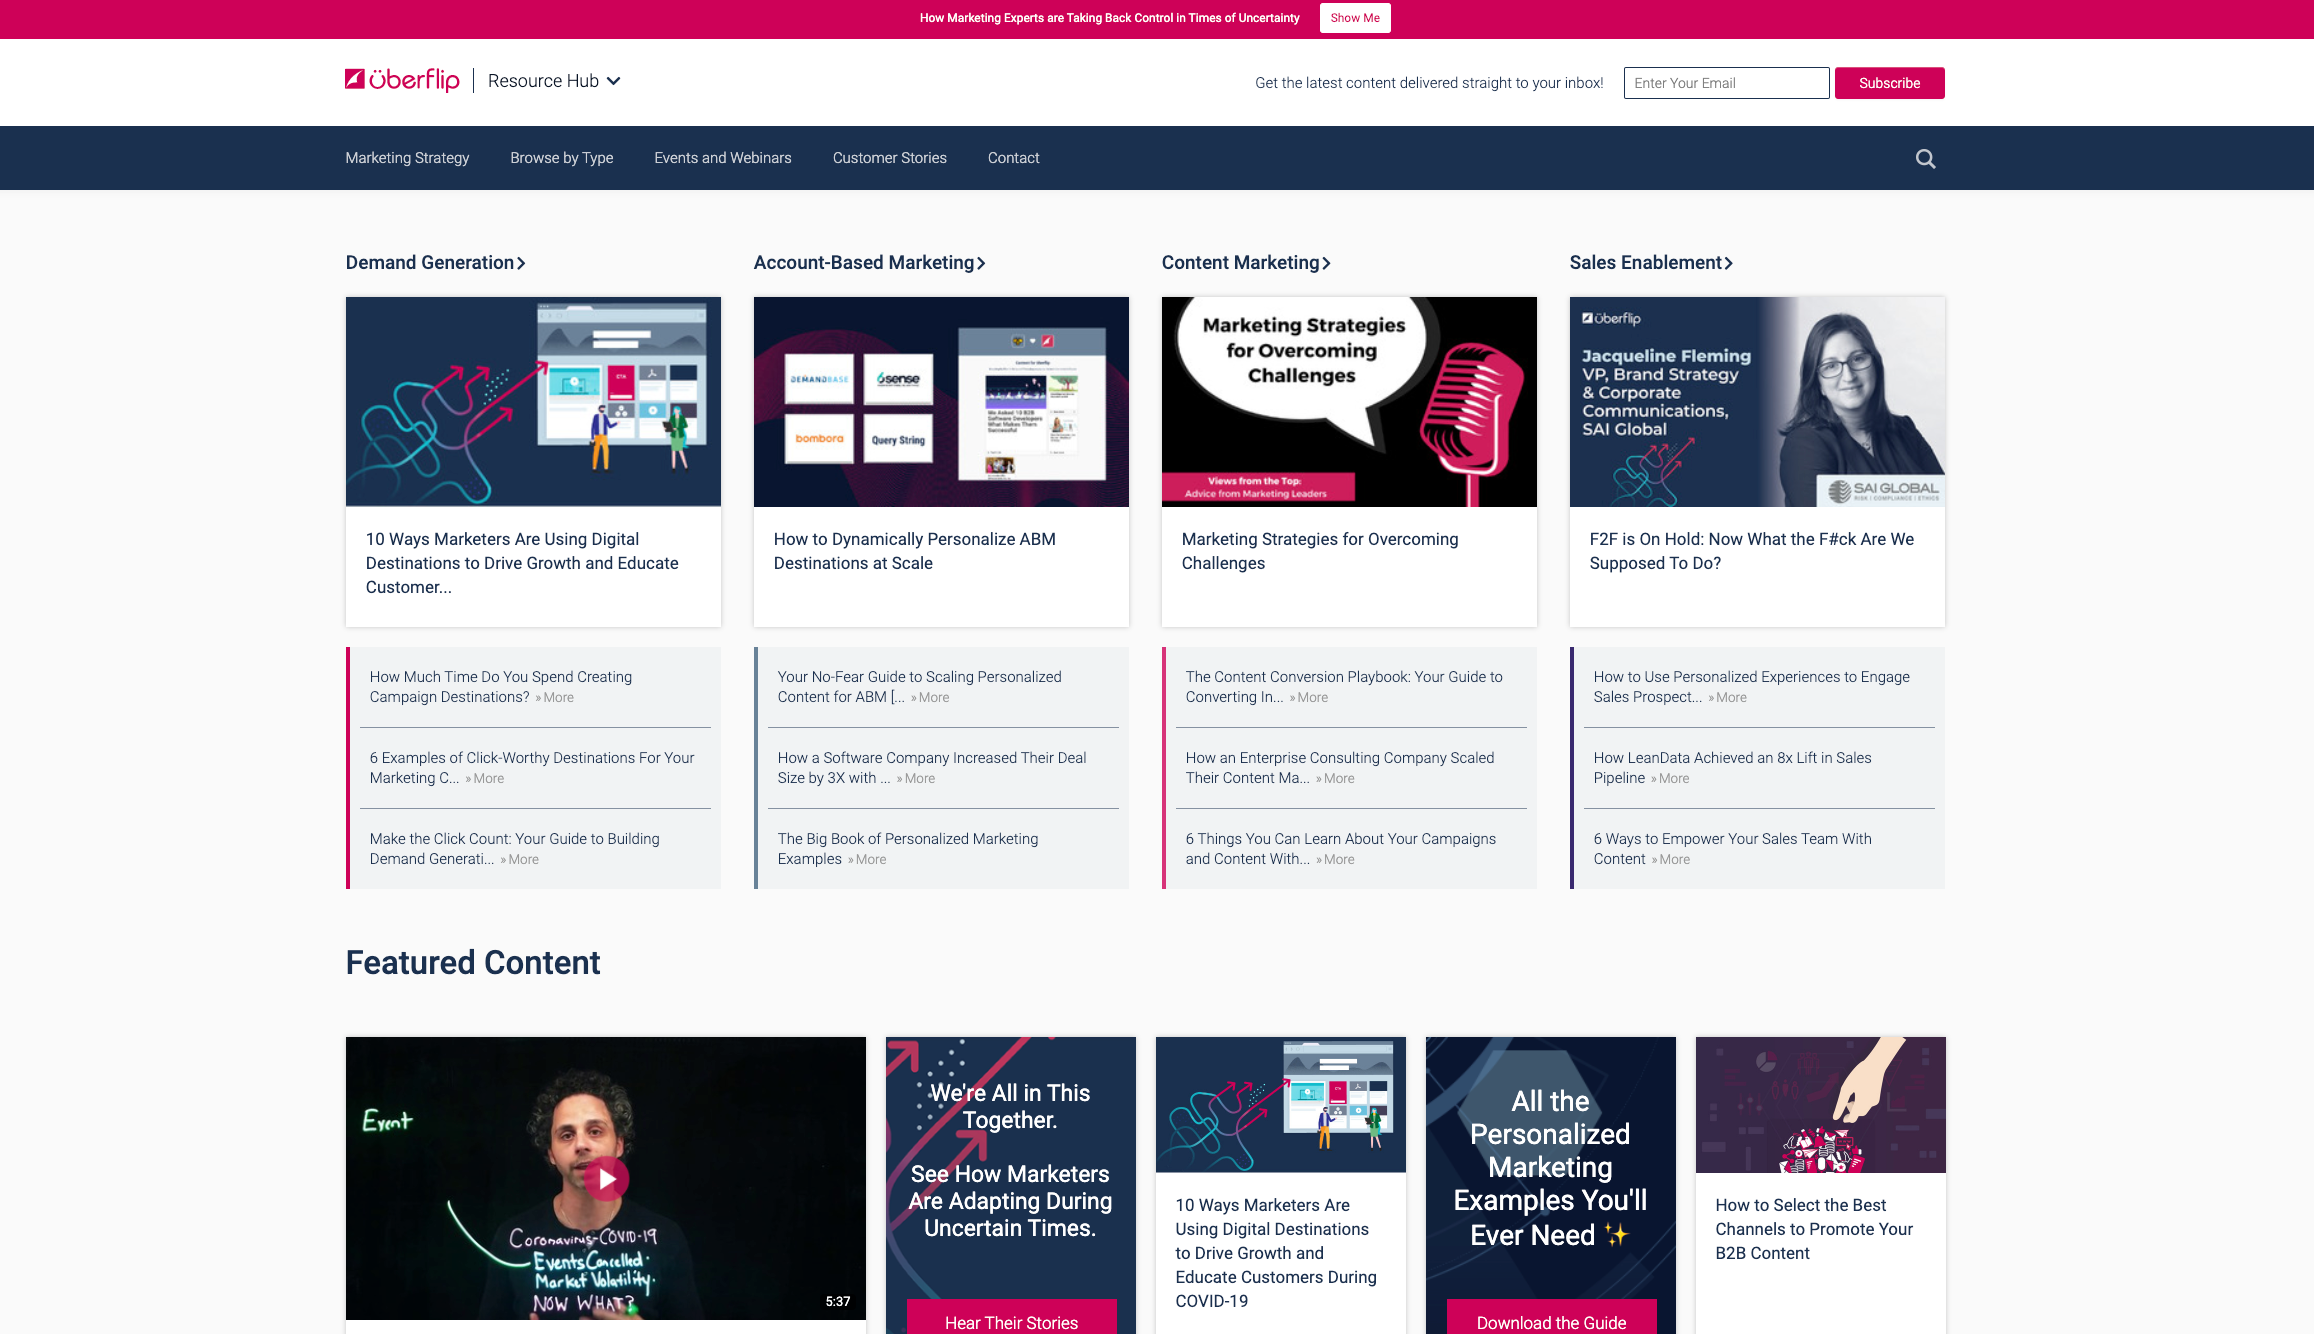 Uberflip's own [Resource Hub](https://hub.uberflip.com/), which features an extensively customized frontend